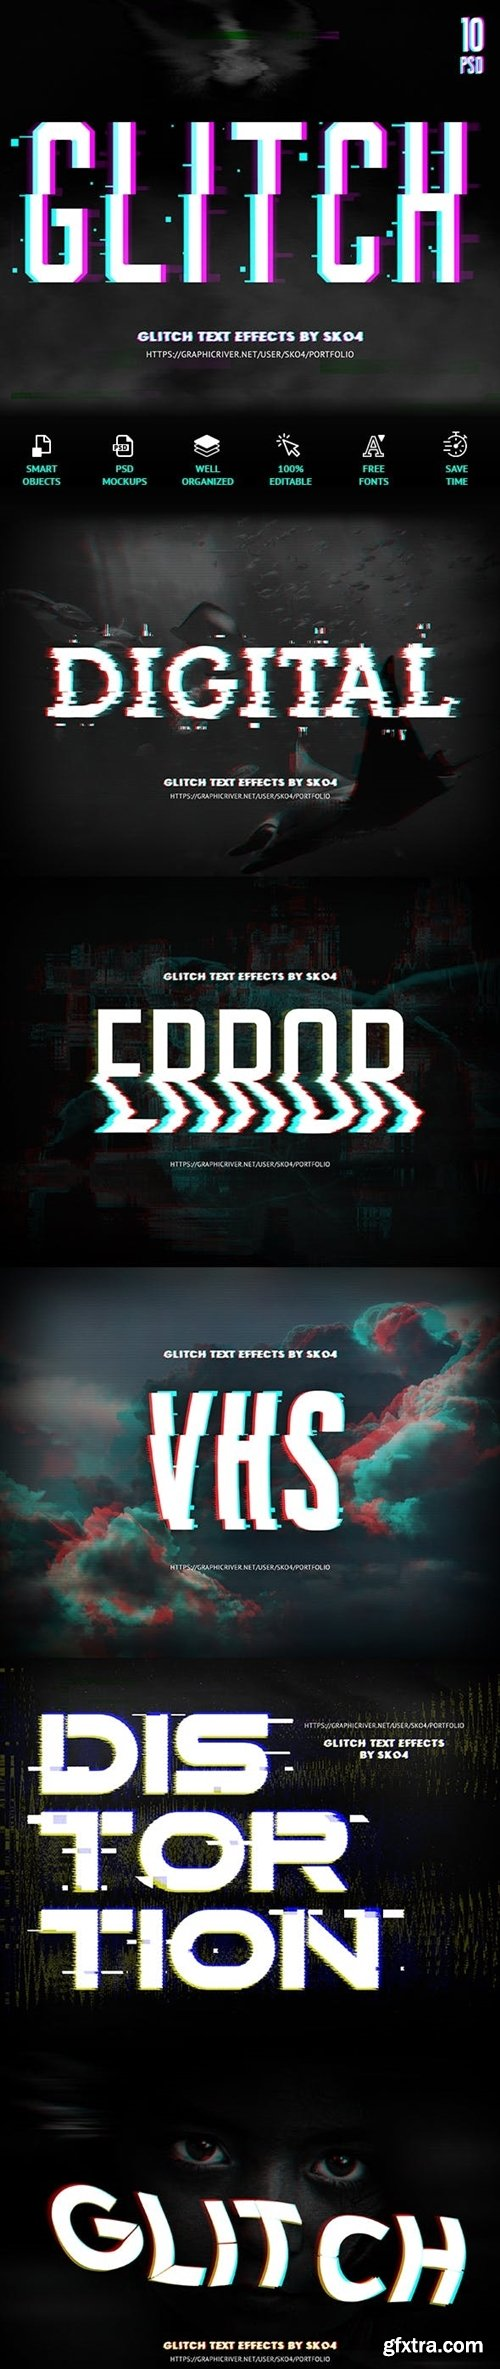 Graphicriver - Glitch Text + Glitch Background FX 22420785